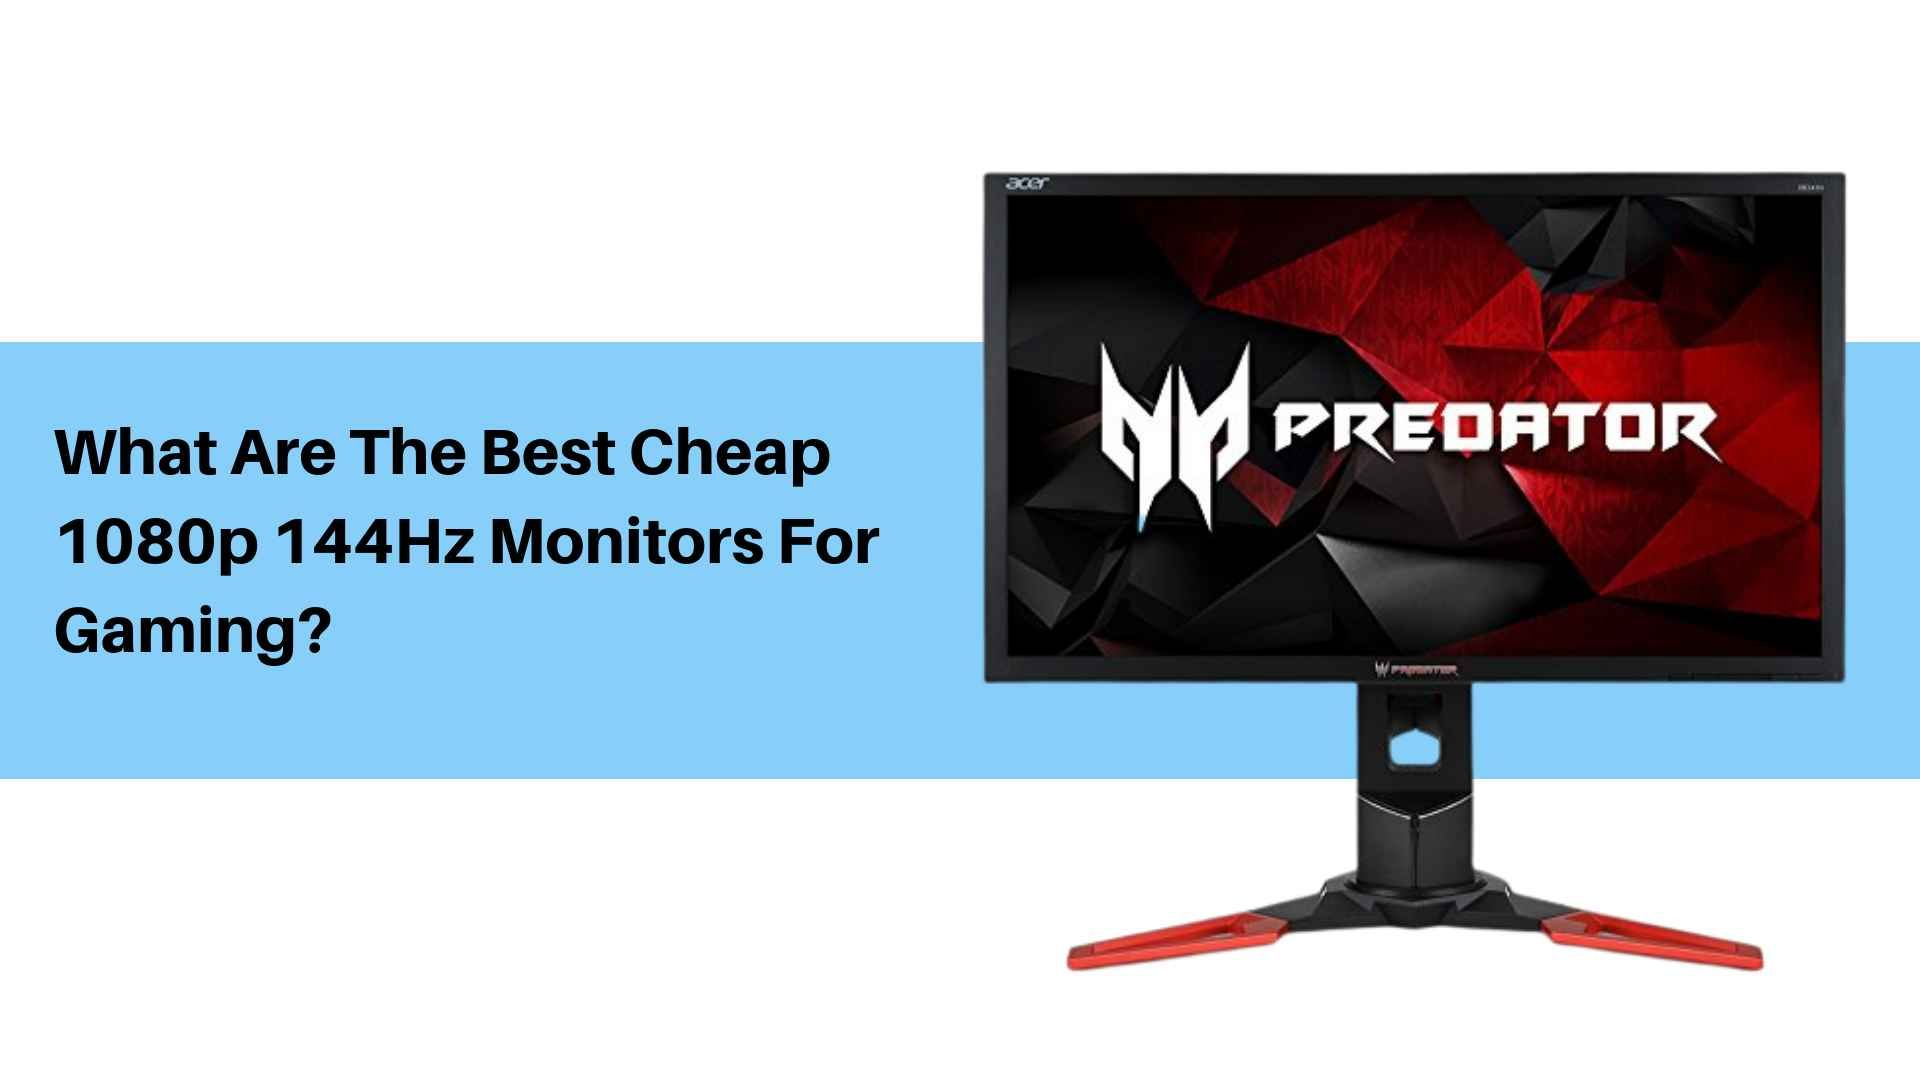 Top 10 Best Budget 1080p 144hz Gaming Monitors To Buy In 2021 Gaming Monitors Monitor Budgeting Best pc build for 1080p 144hz gaming